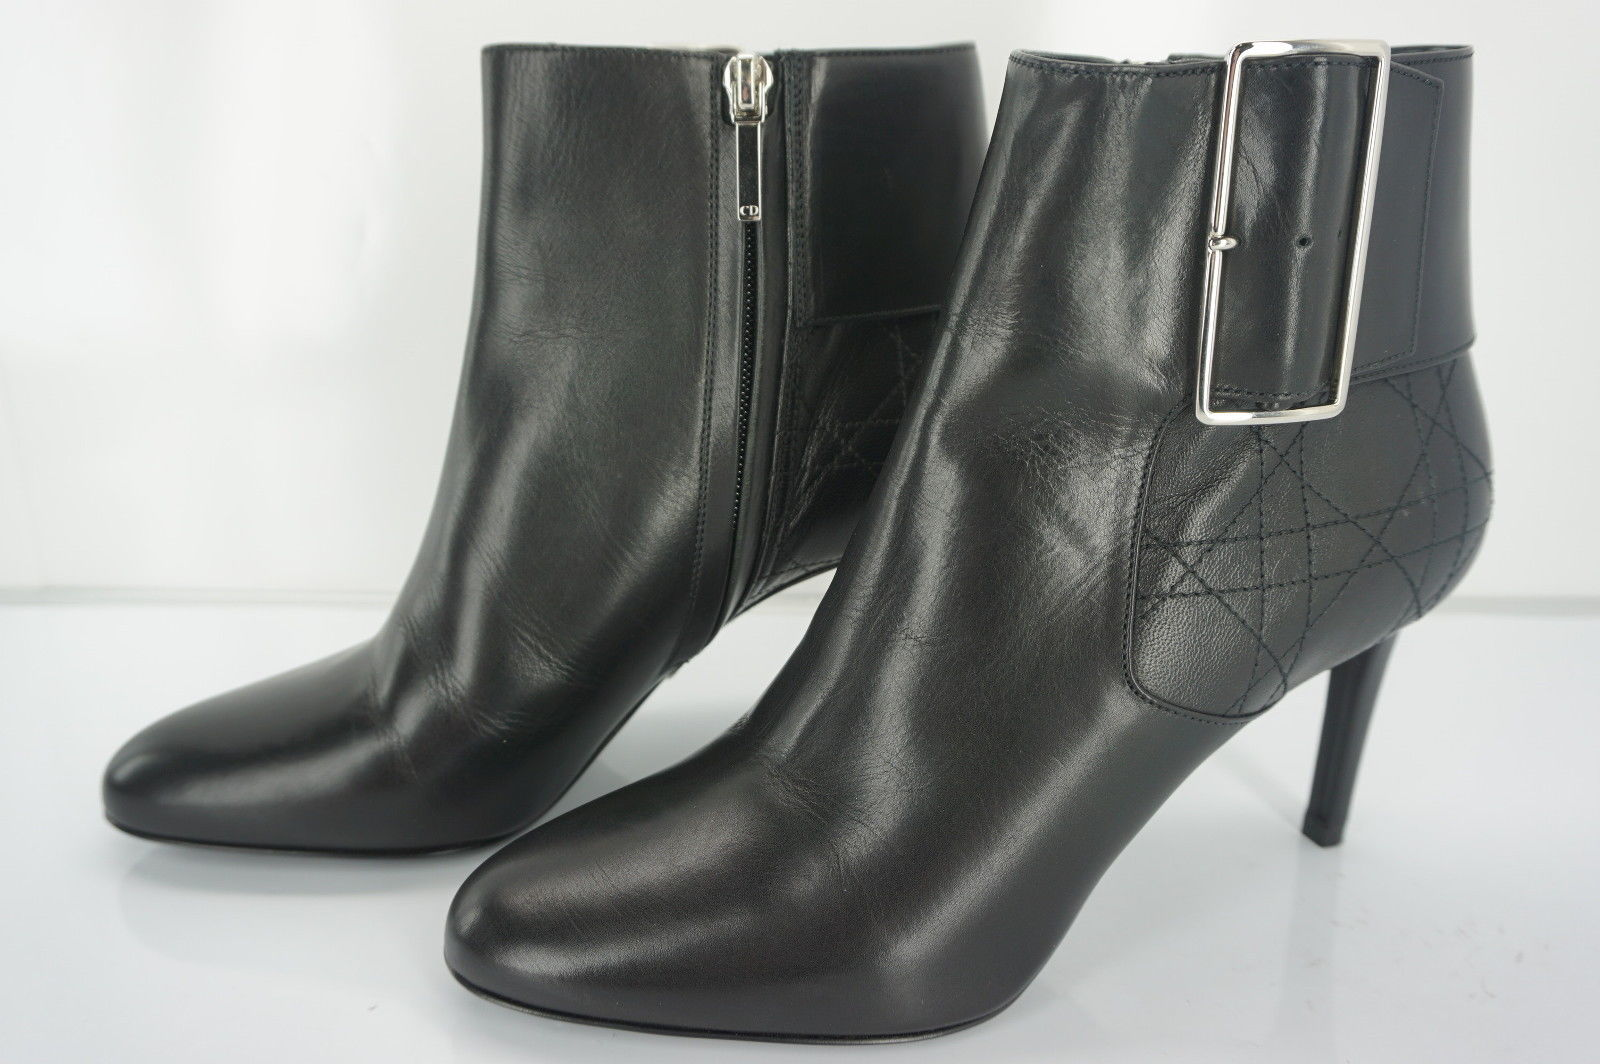 Christian Dior Womens Graphic buckle Boot Black Leather Size 38.5